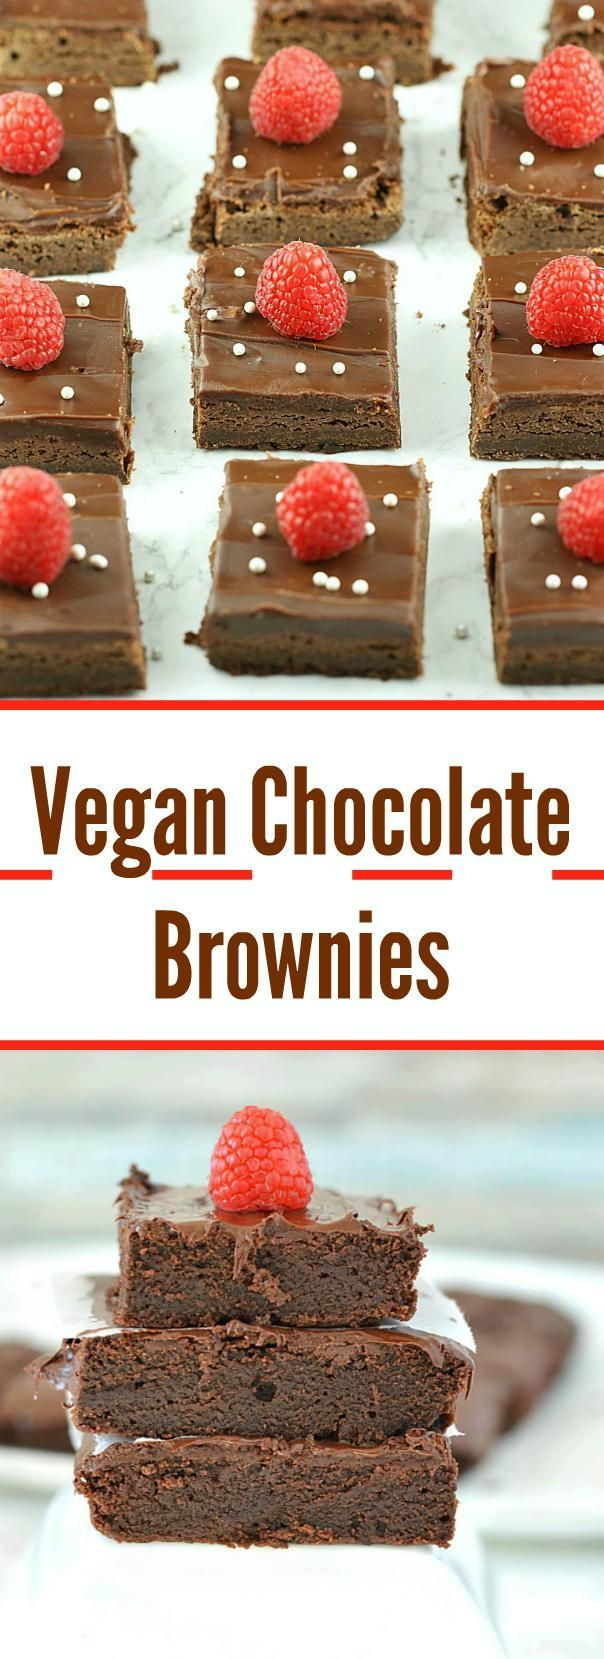 Thick and fudgy Vegan Chocolate Brownies are a pure indulgence. These are the best vegan brownies you've ever tasted – oh so chocolaty, delicious and definitely crave-worthy!!